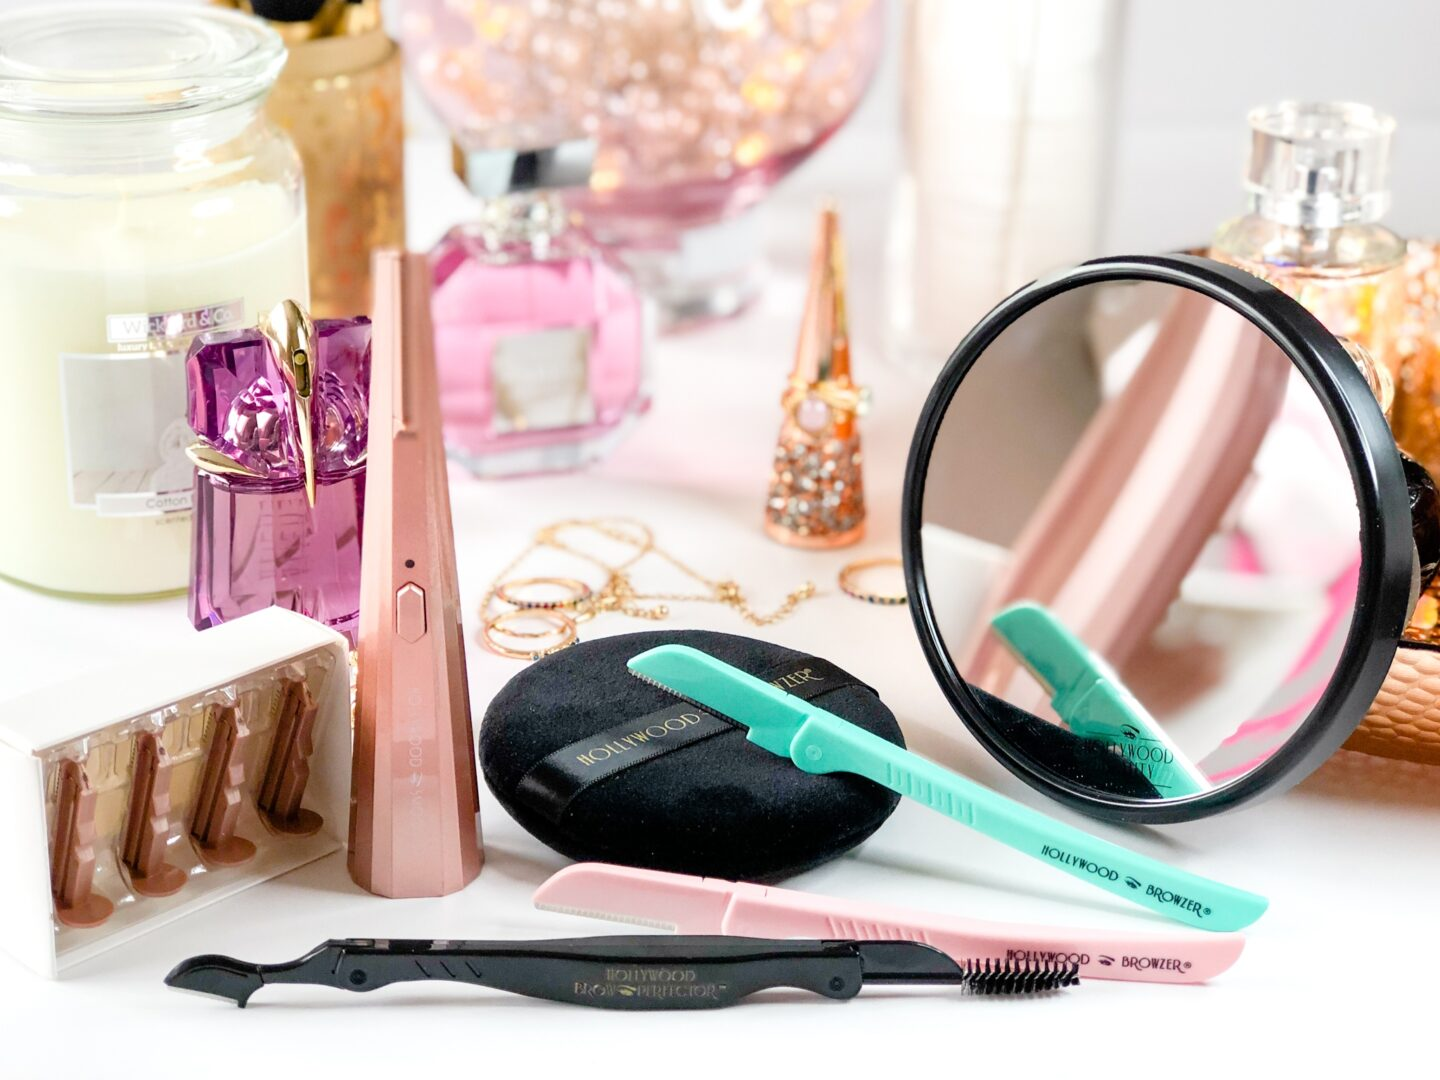 Hollywood Browzer - Best Valentine's Day Gifts To Give Yourself A Pamper